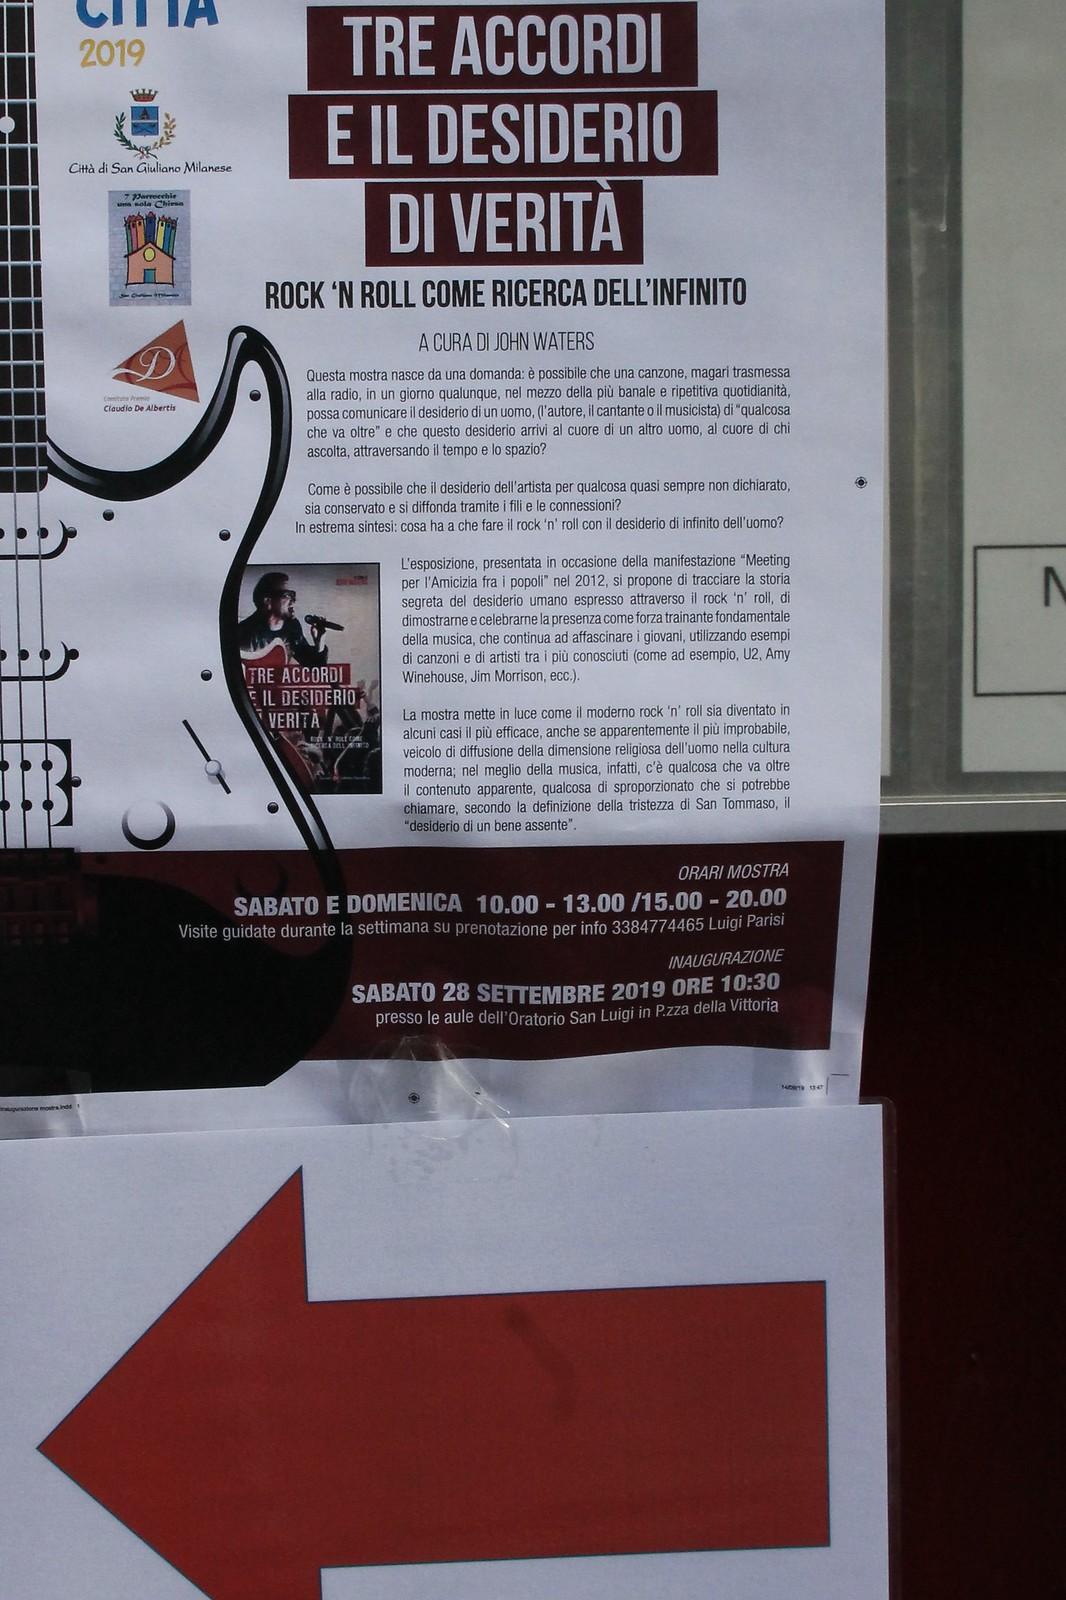 Rock'n Roll all'Oratorio San Luigi, con concerto e mostra